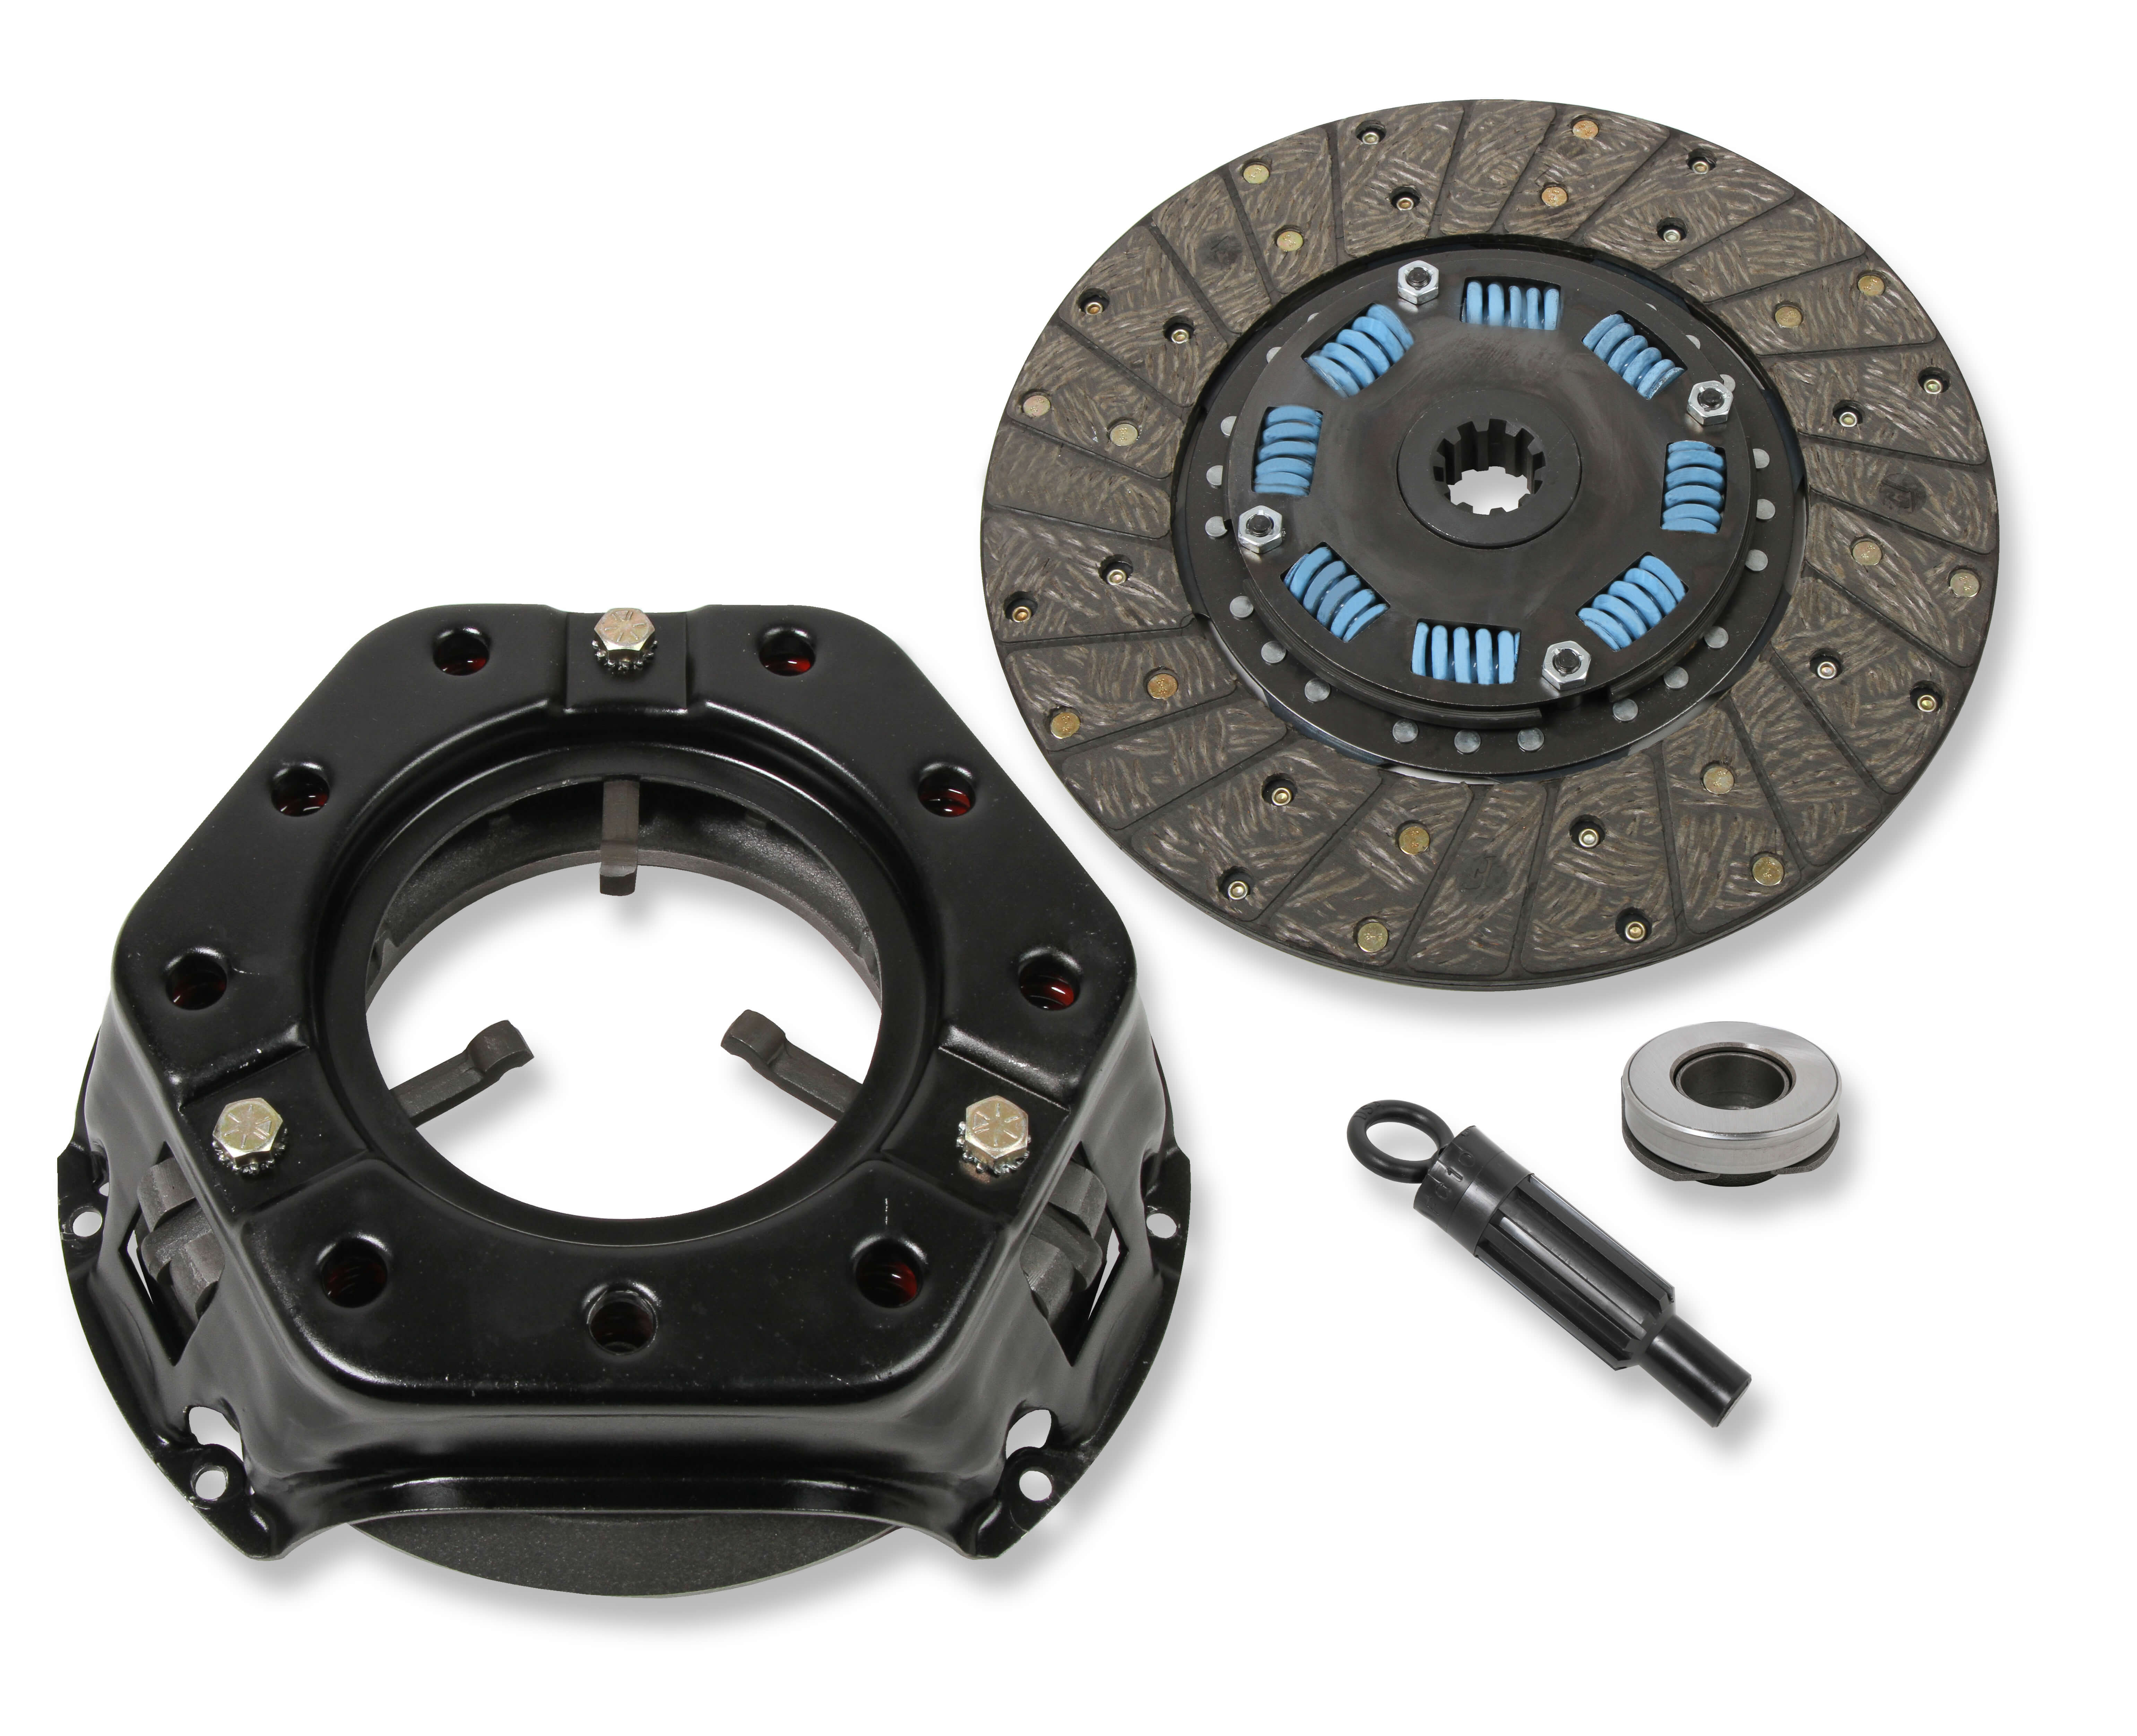 91-2007 Hays Clutch Set 11 Inch Clutch Diameter